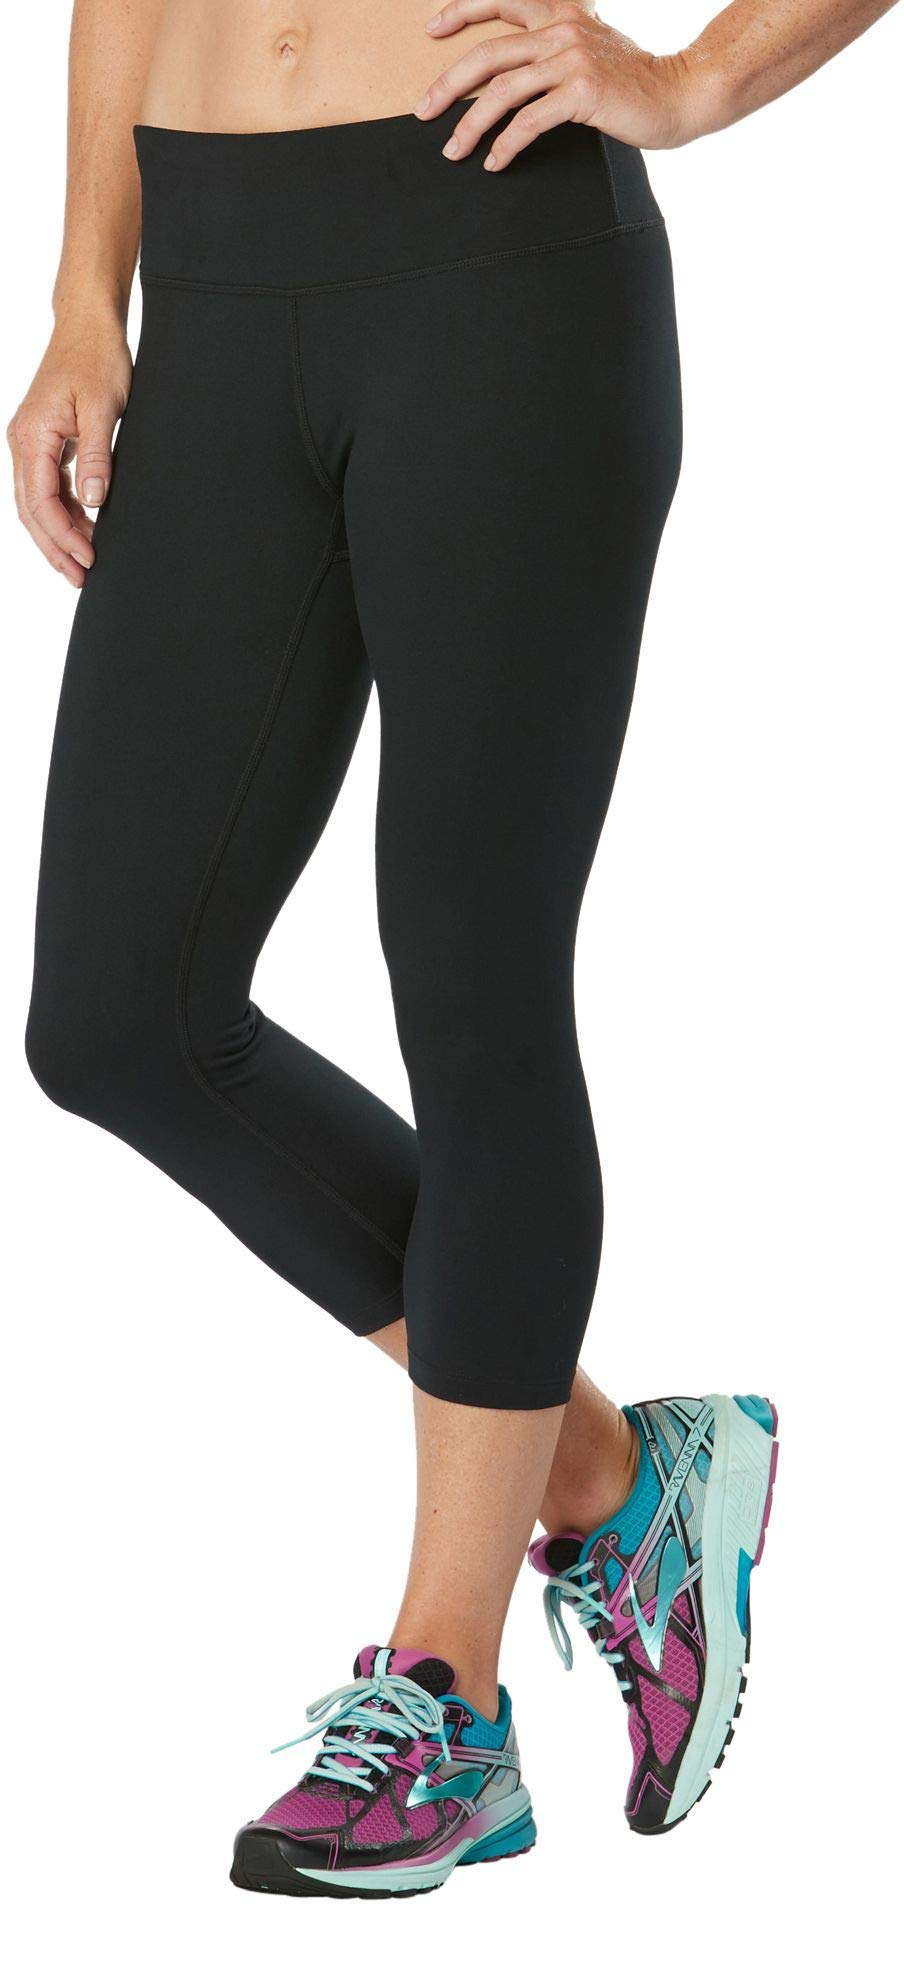 R-Gear Women's 19-inch Workout Capri Tights with Inner Pocket for Gym, Yoga, Fitness, Training, Lounge   Leg Up II